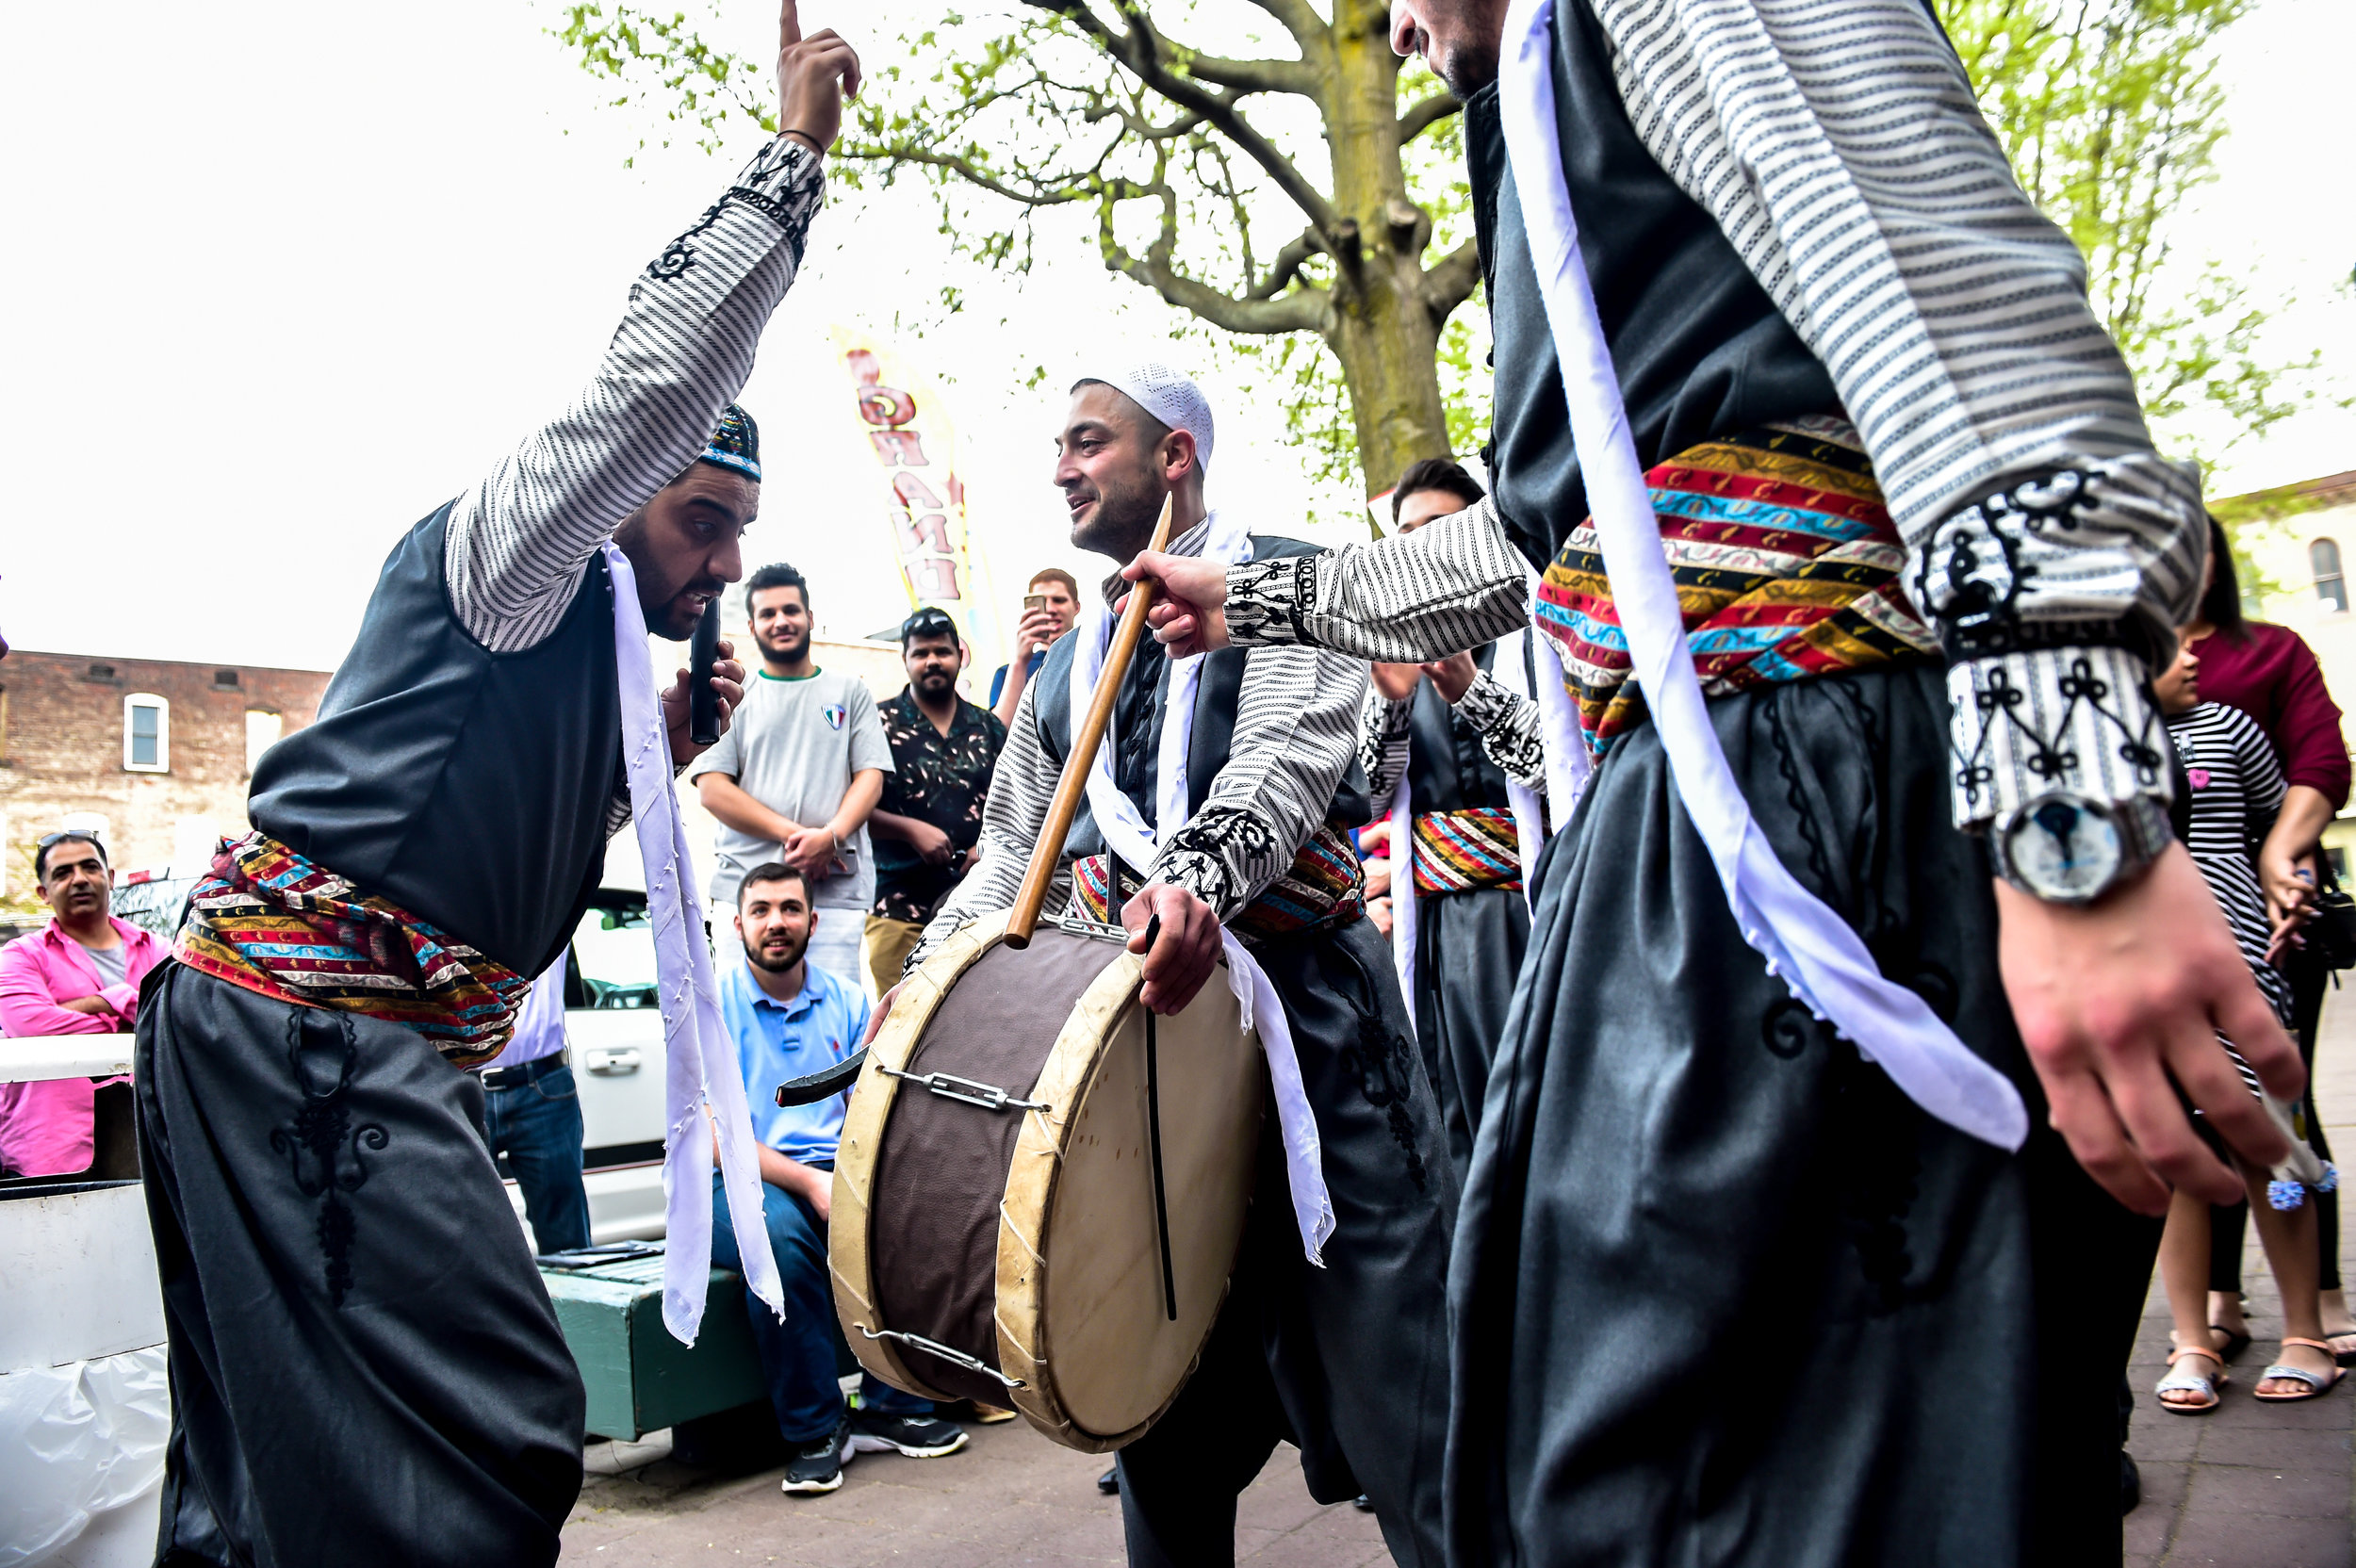 Syrian men perform music and dance during the grand opening of Tazza Shawarma and Mediterranean Grill.